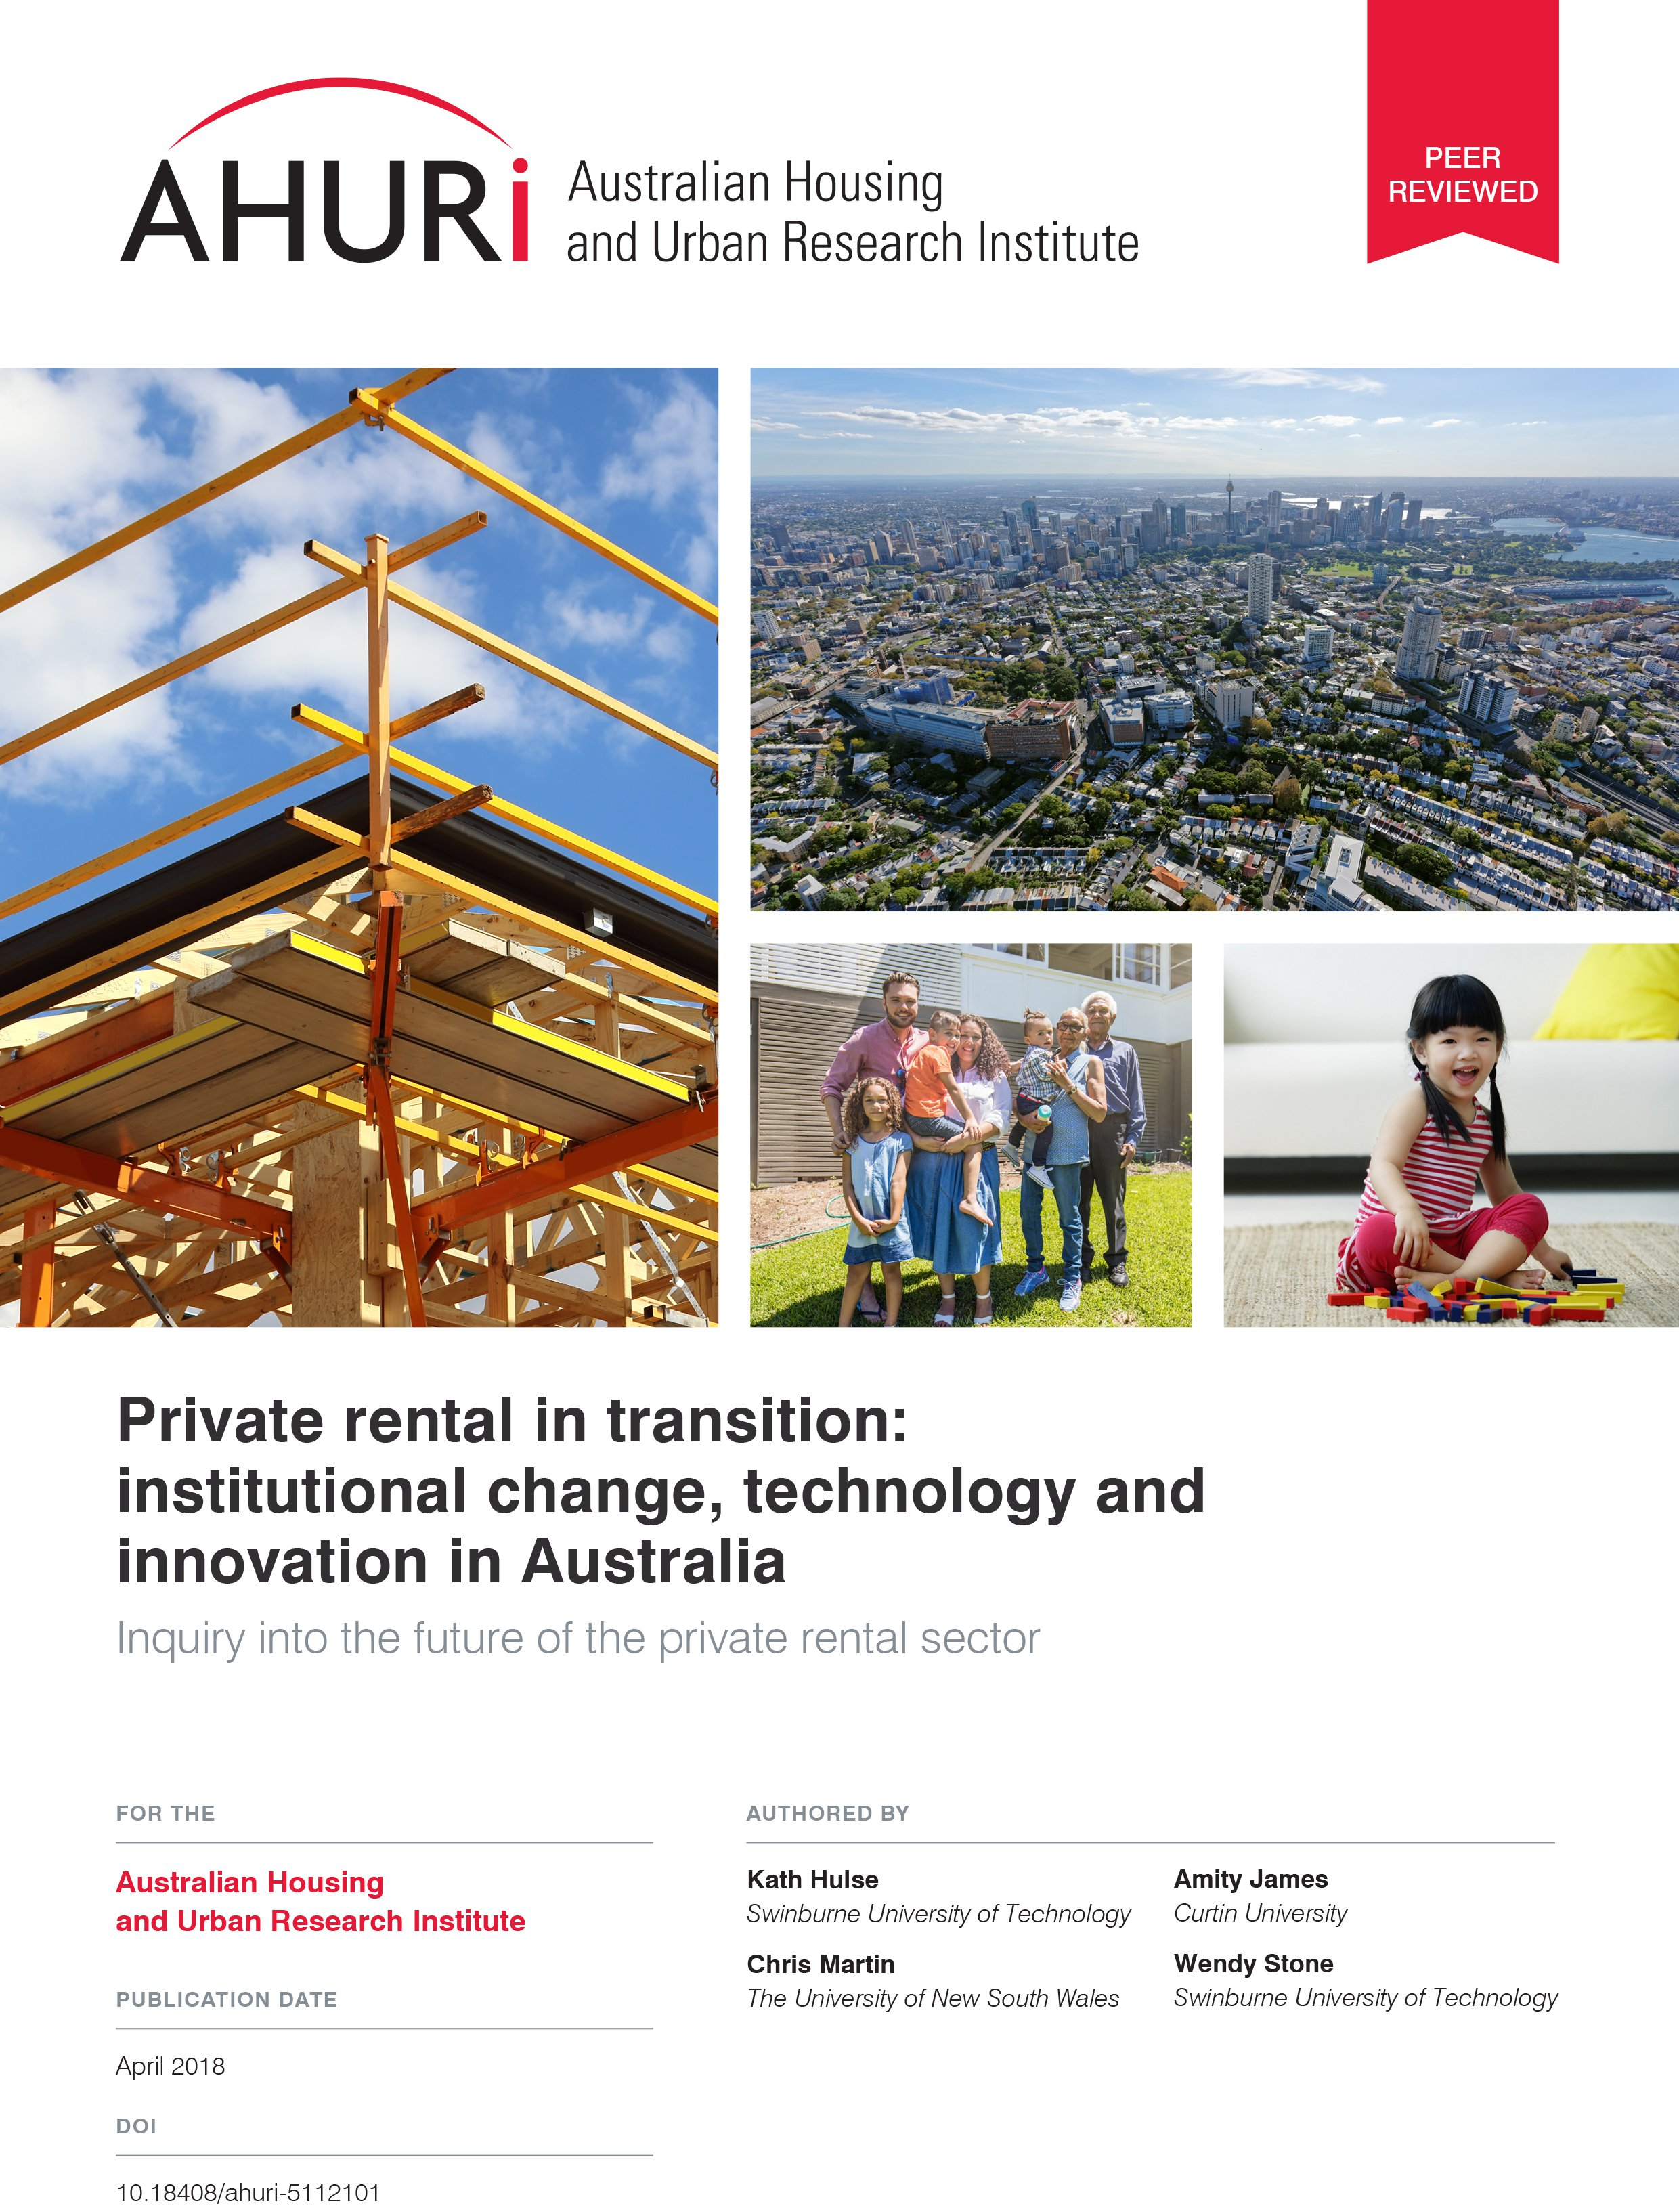 Final Report - The institutional dynamics of the Australian private rental sector: prospects and opportunities